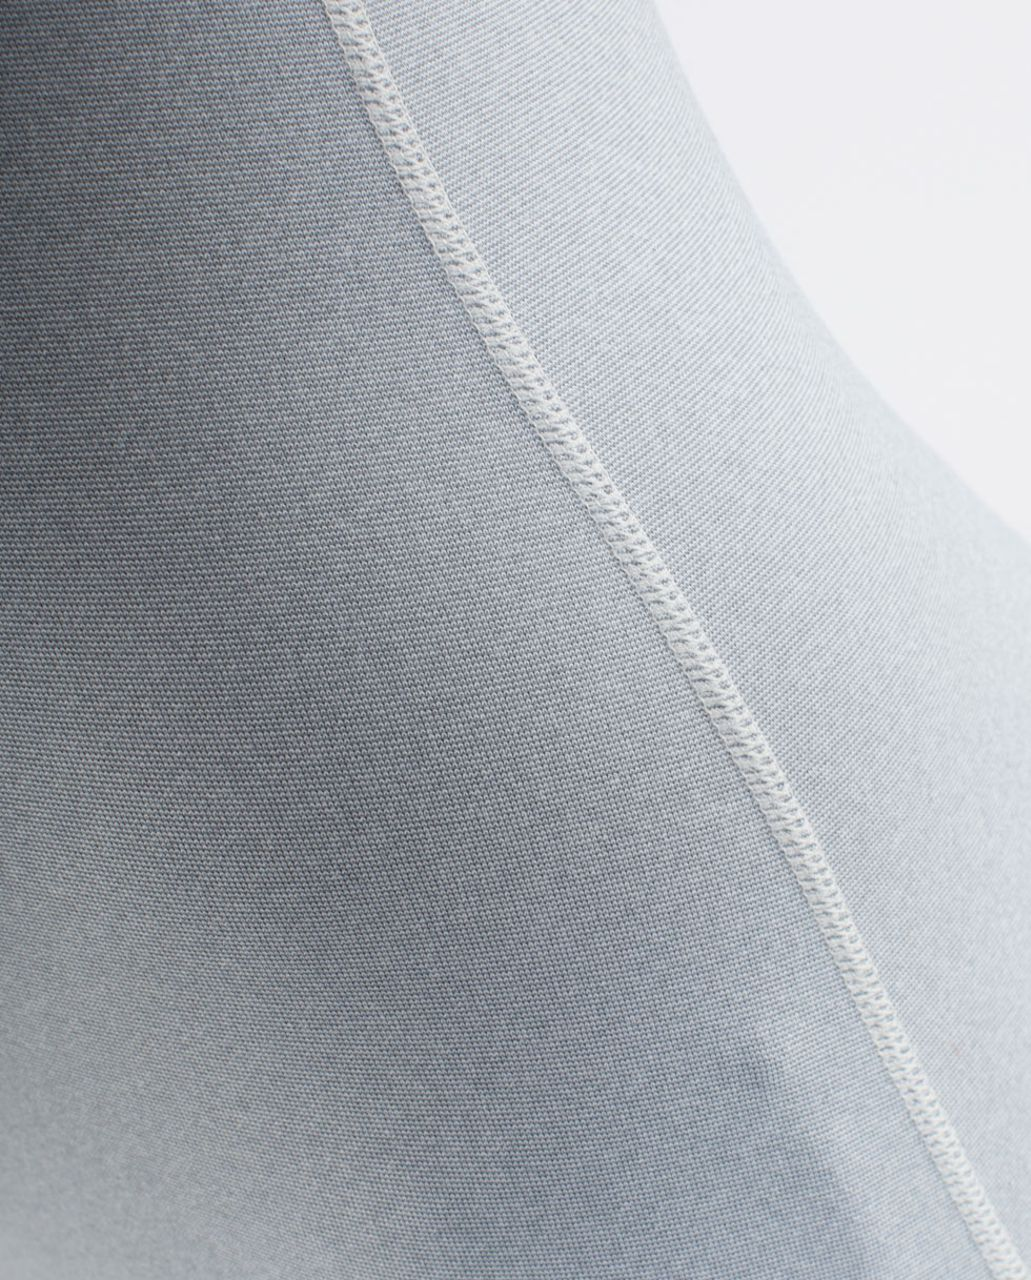 Lululemon Cool Racerback - Ghost Blurred Grey Mini Stripe